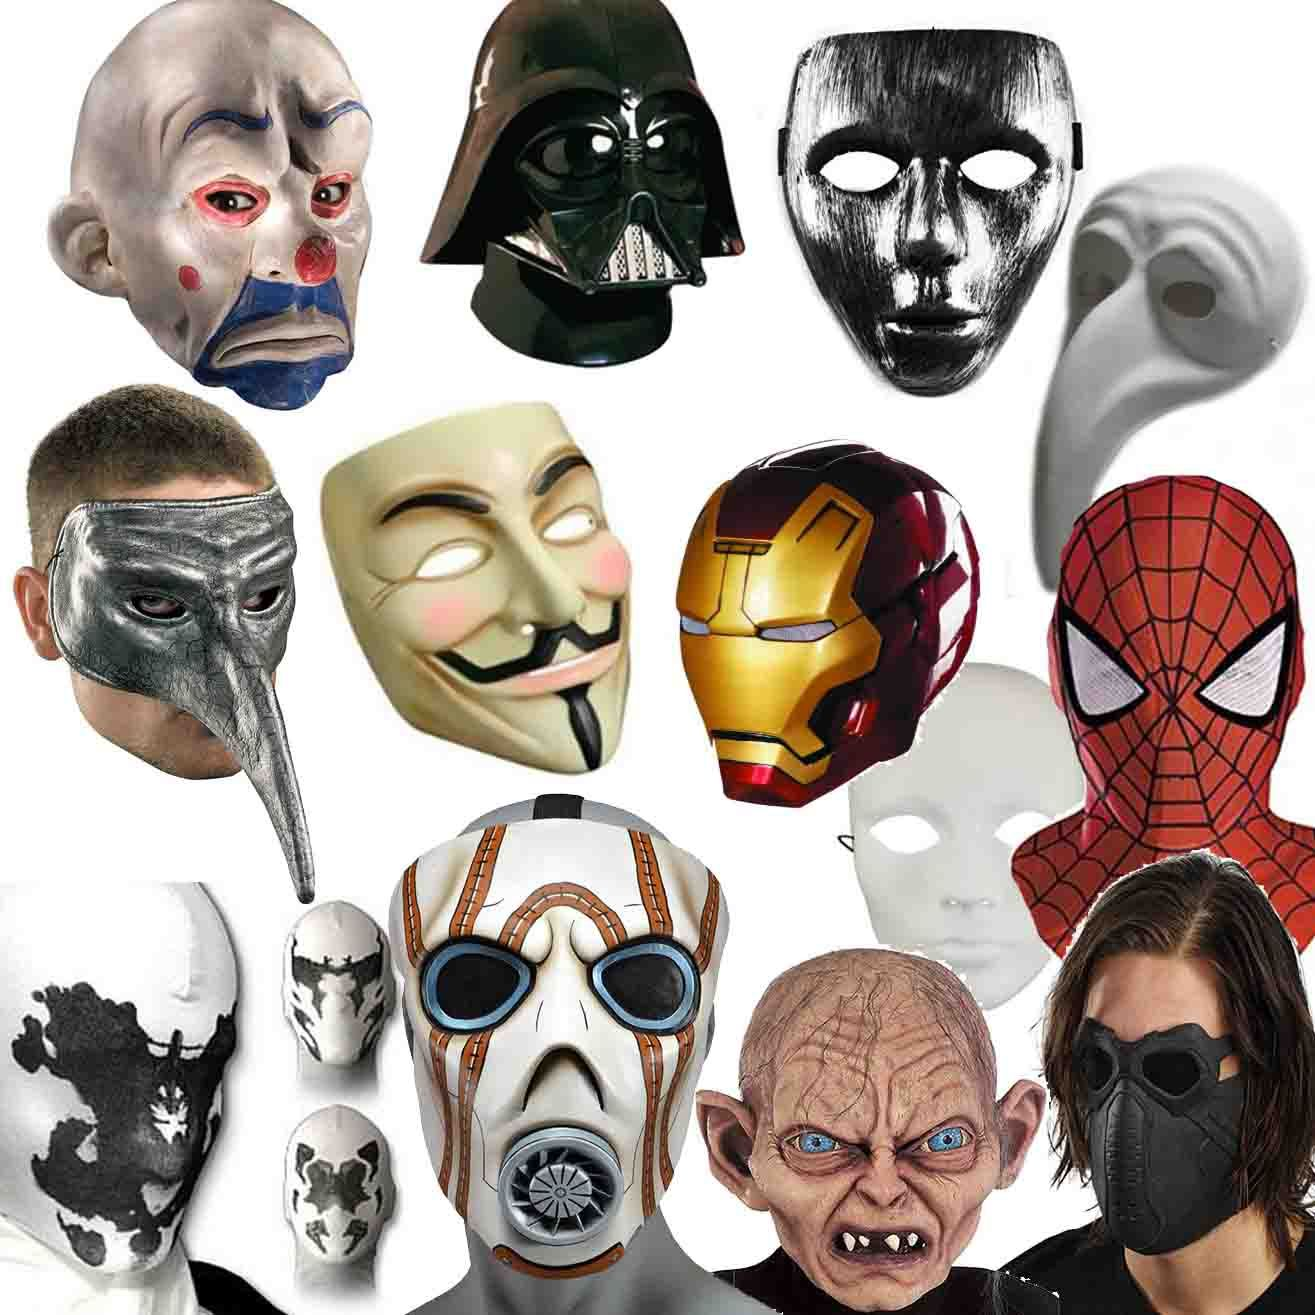 Rock out as Spiderman or Golum, or grab your whole crew V for ...